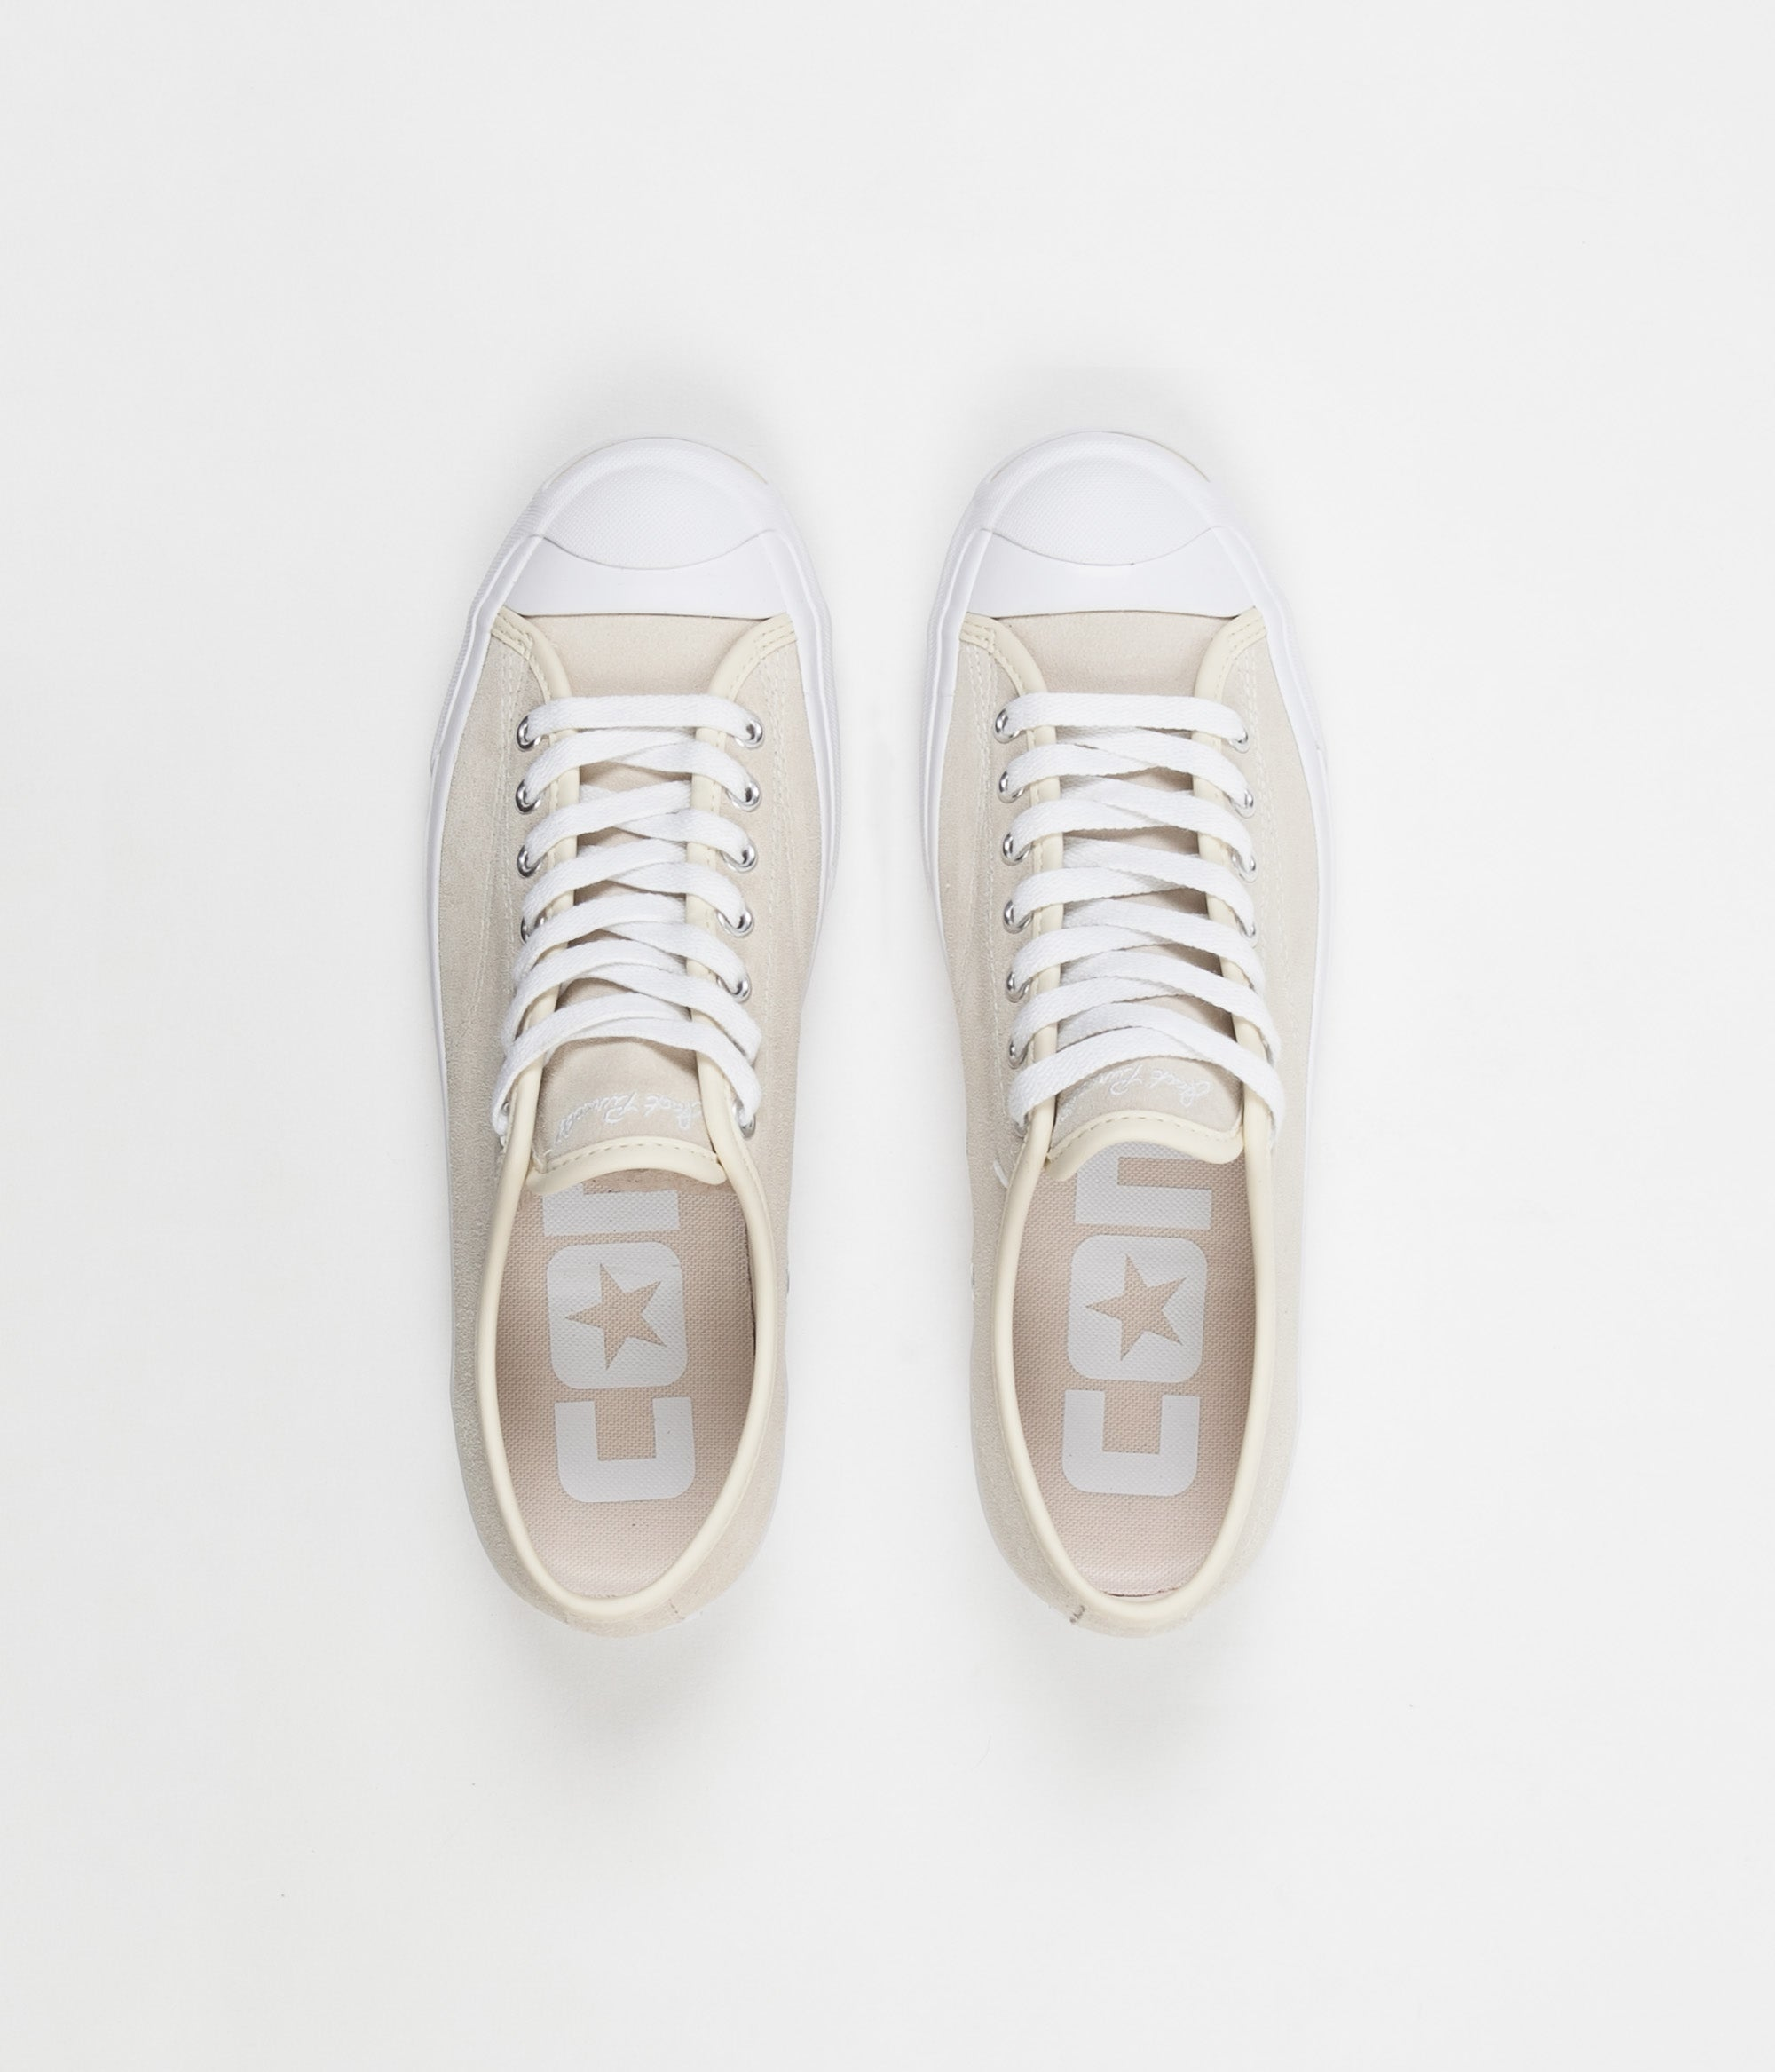 Converse JP Pro Ox Shoes - Natural / White / White